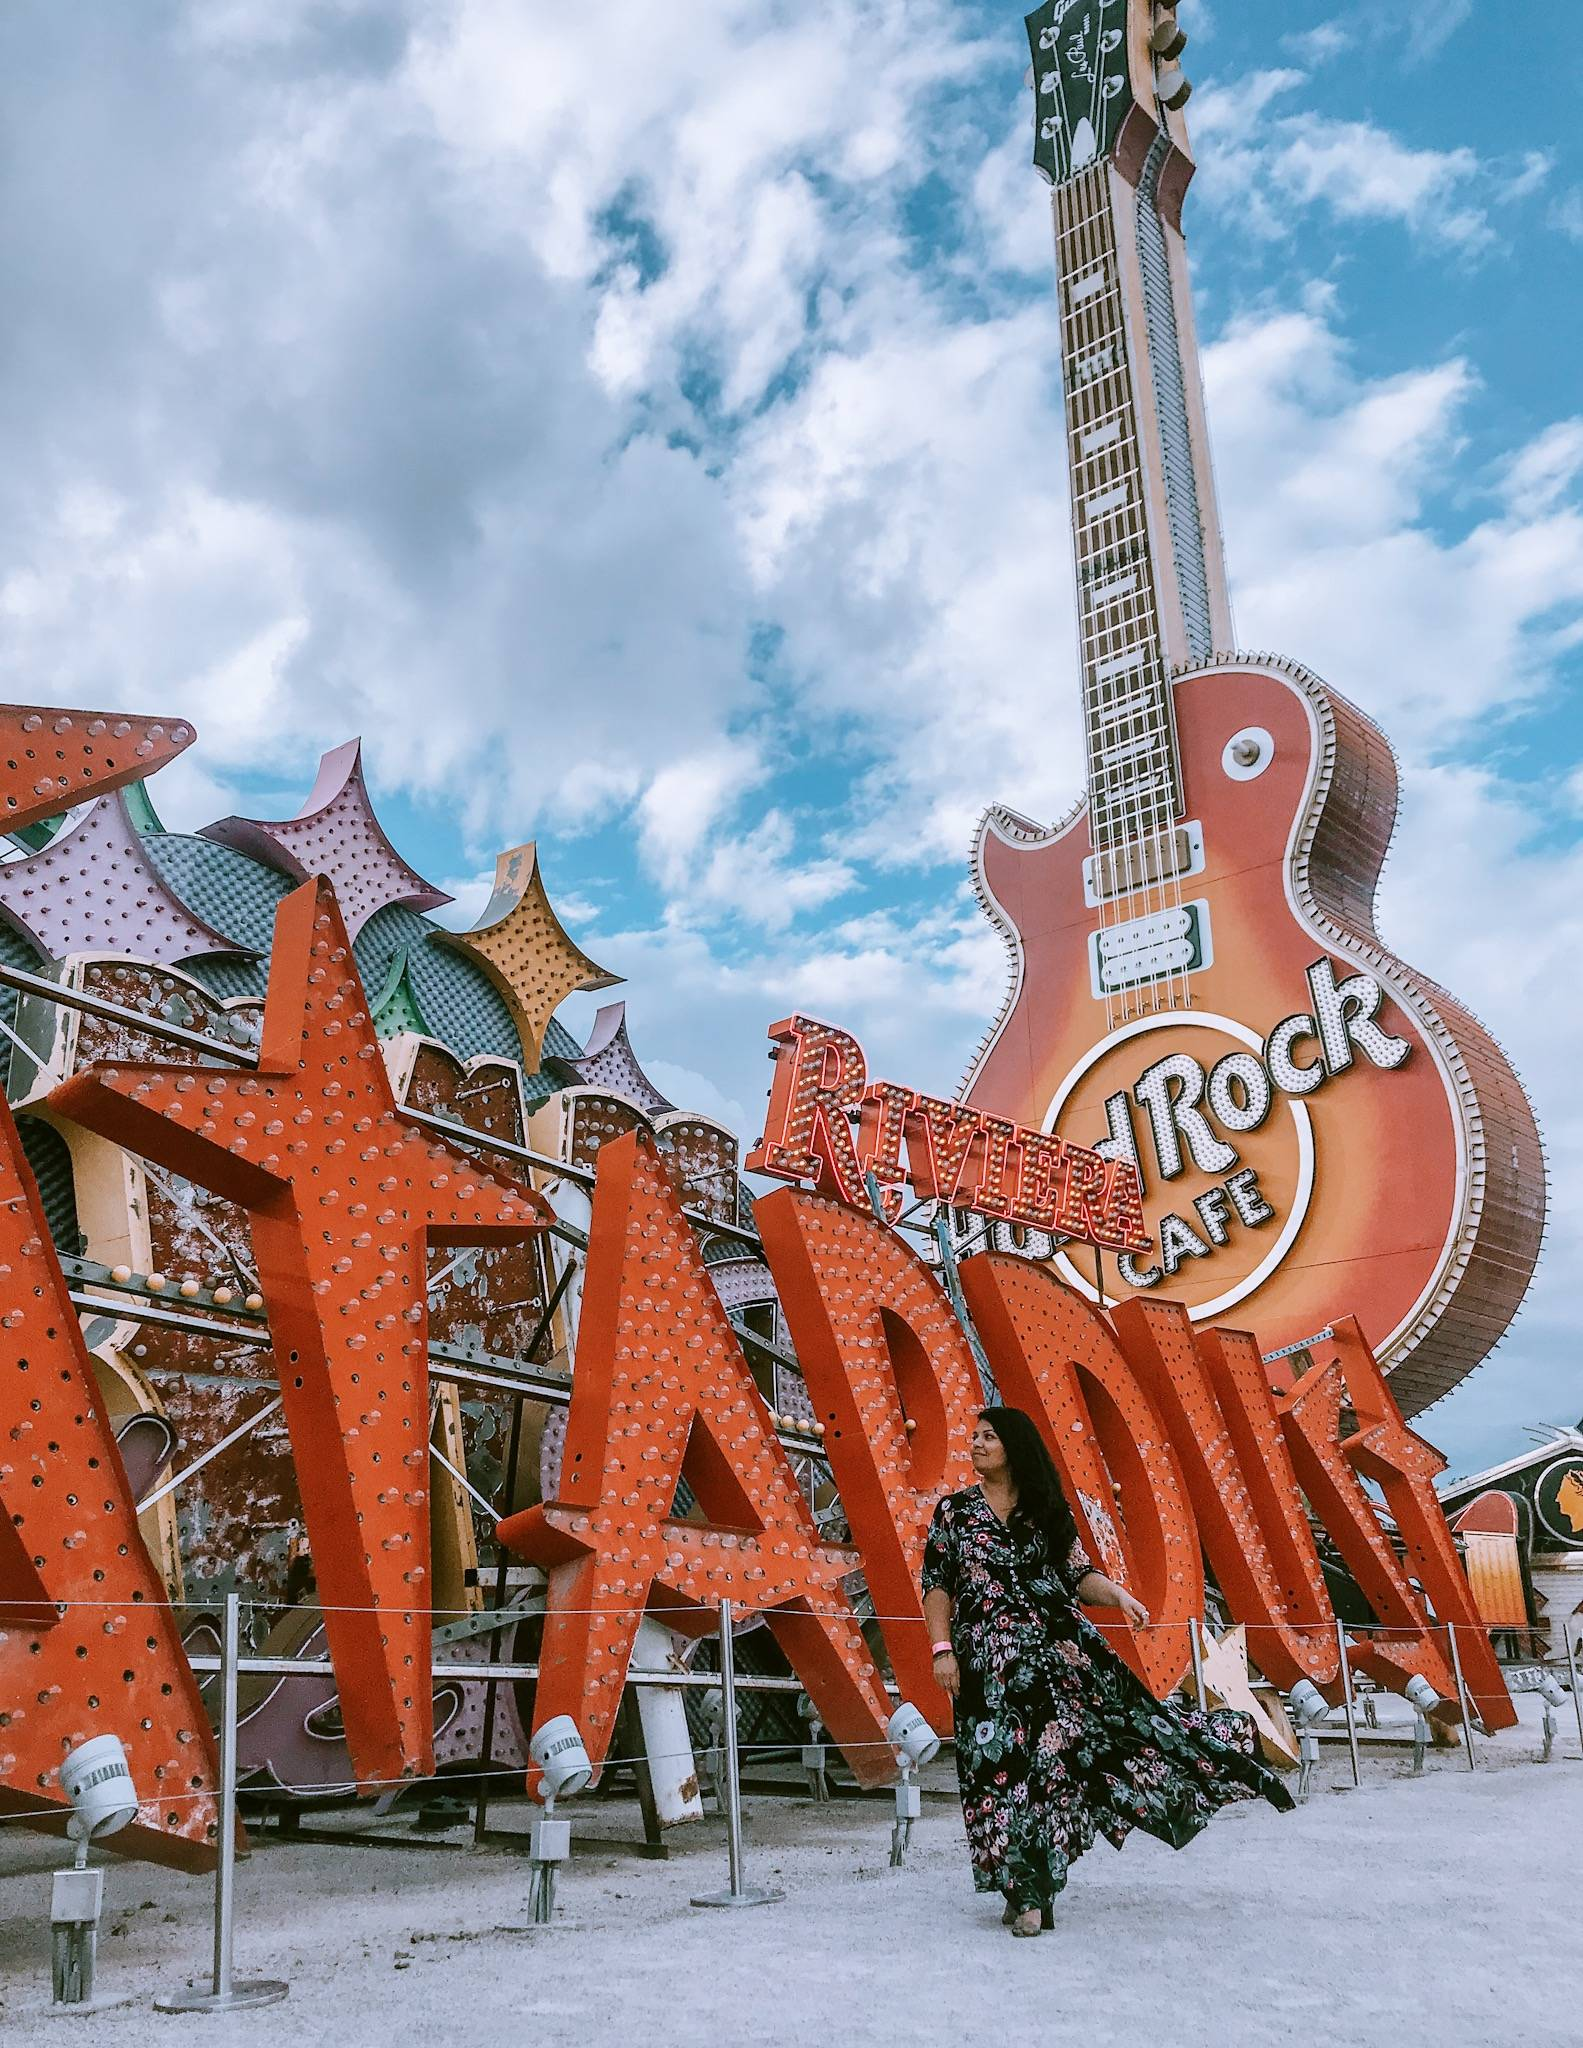 A girls' trip to Vegas isn't complete without striking a pose for the gram - the NEON museum is perfect for that